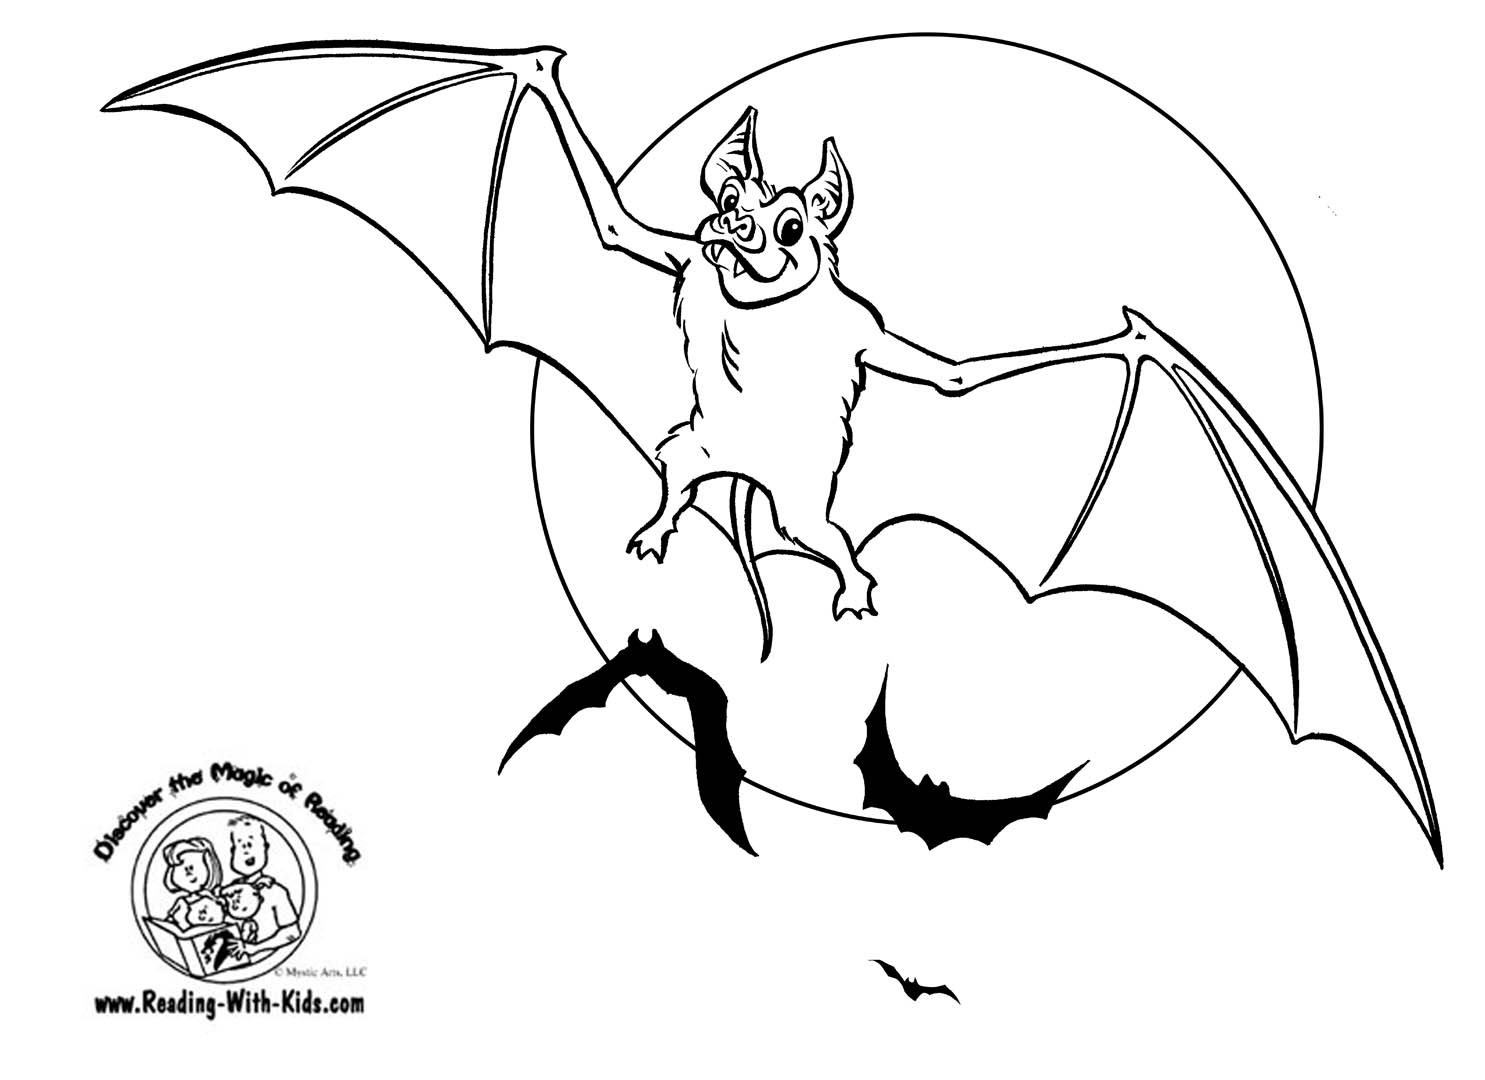 Adult Cute Bat Coloring Pages Printable Images top bat coloring pages to download and print for free images